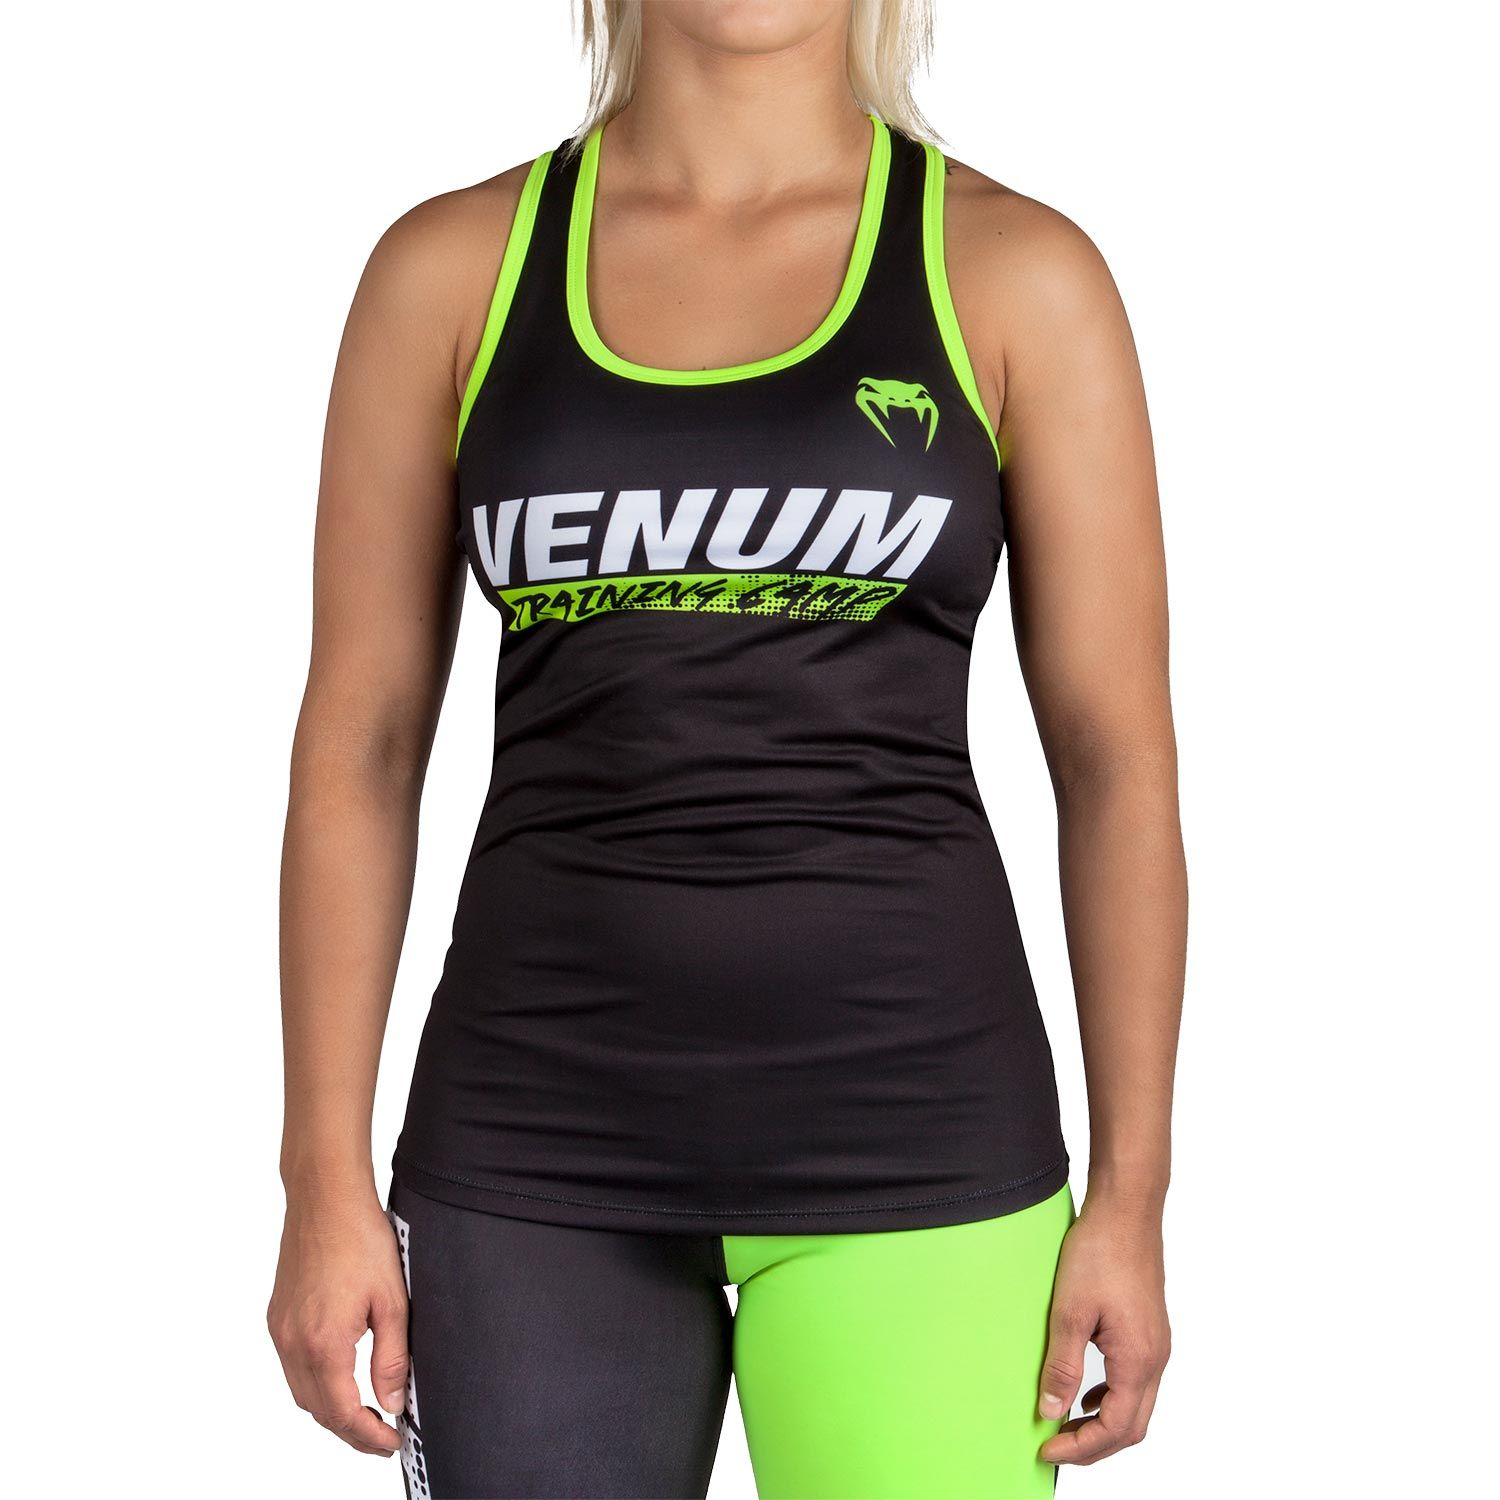 Venum Training Camp Tank Top